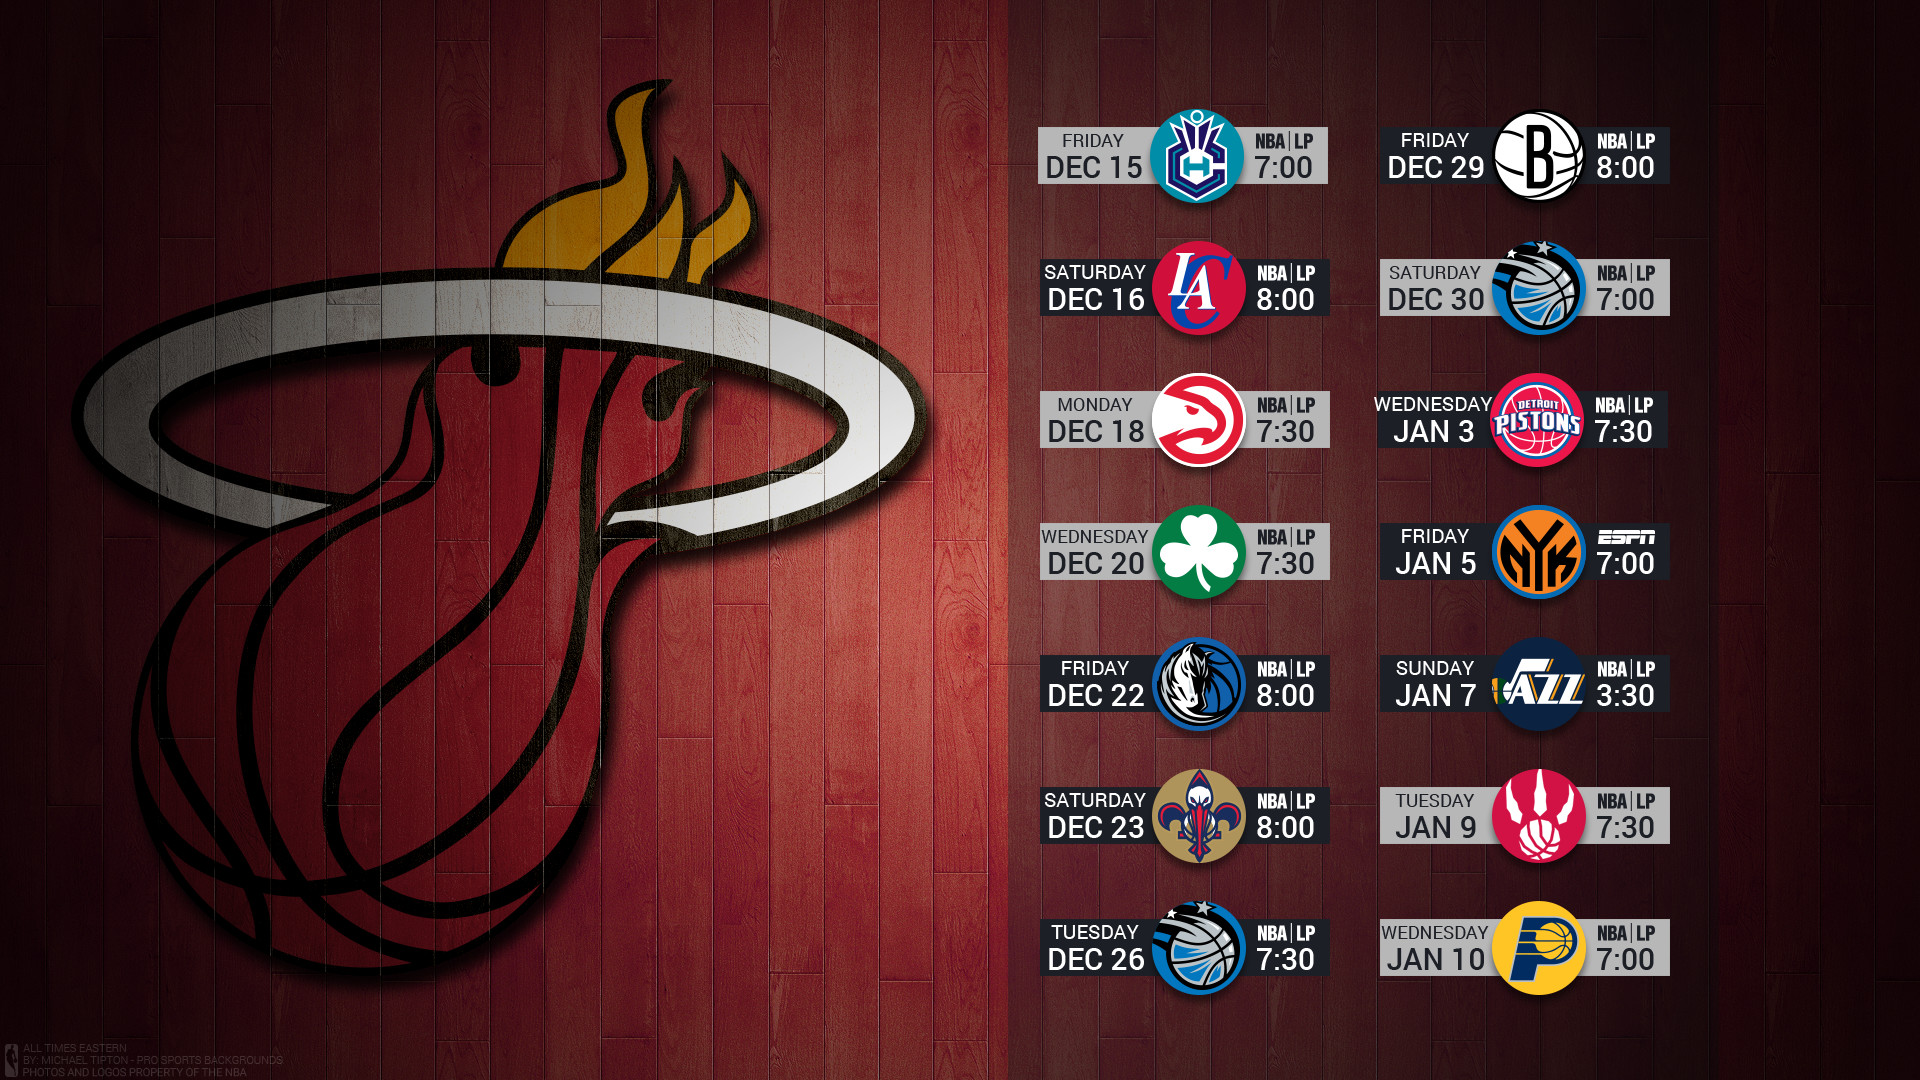 Miami heat iphone wallpaper 2018 68 images - Miami heat wallpaper android download ...